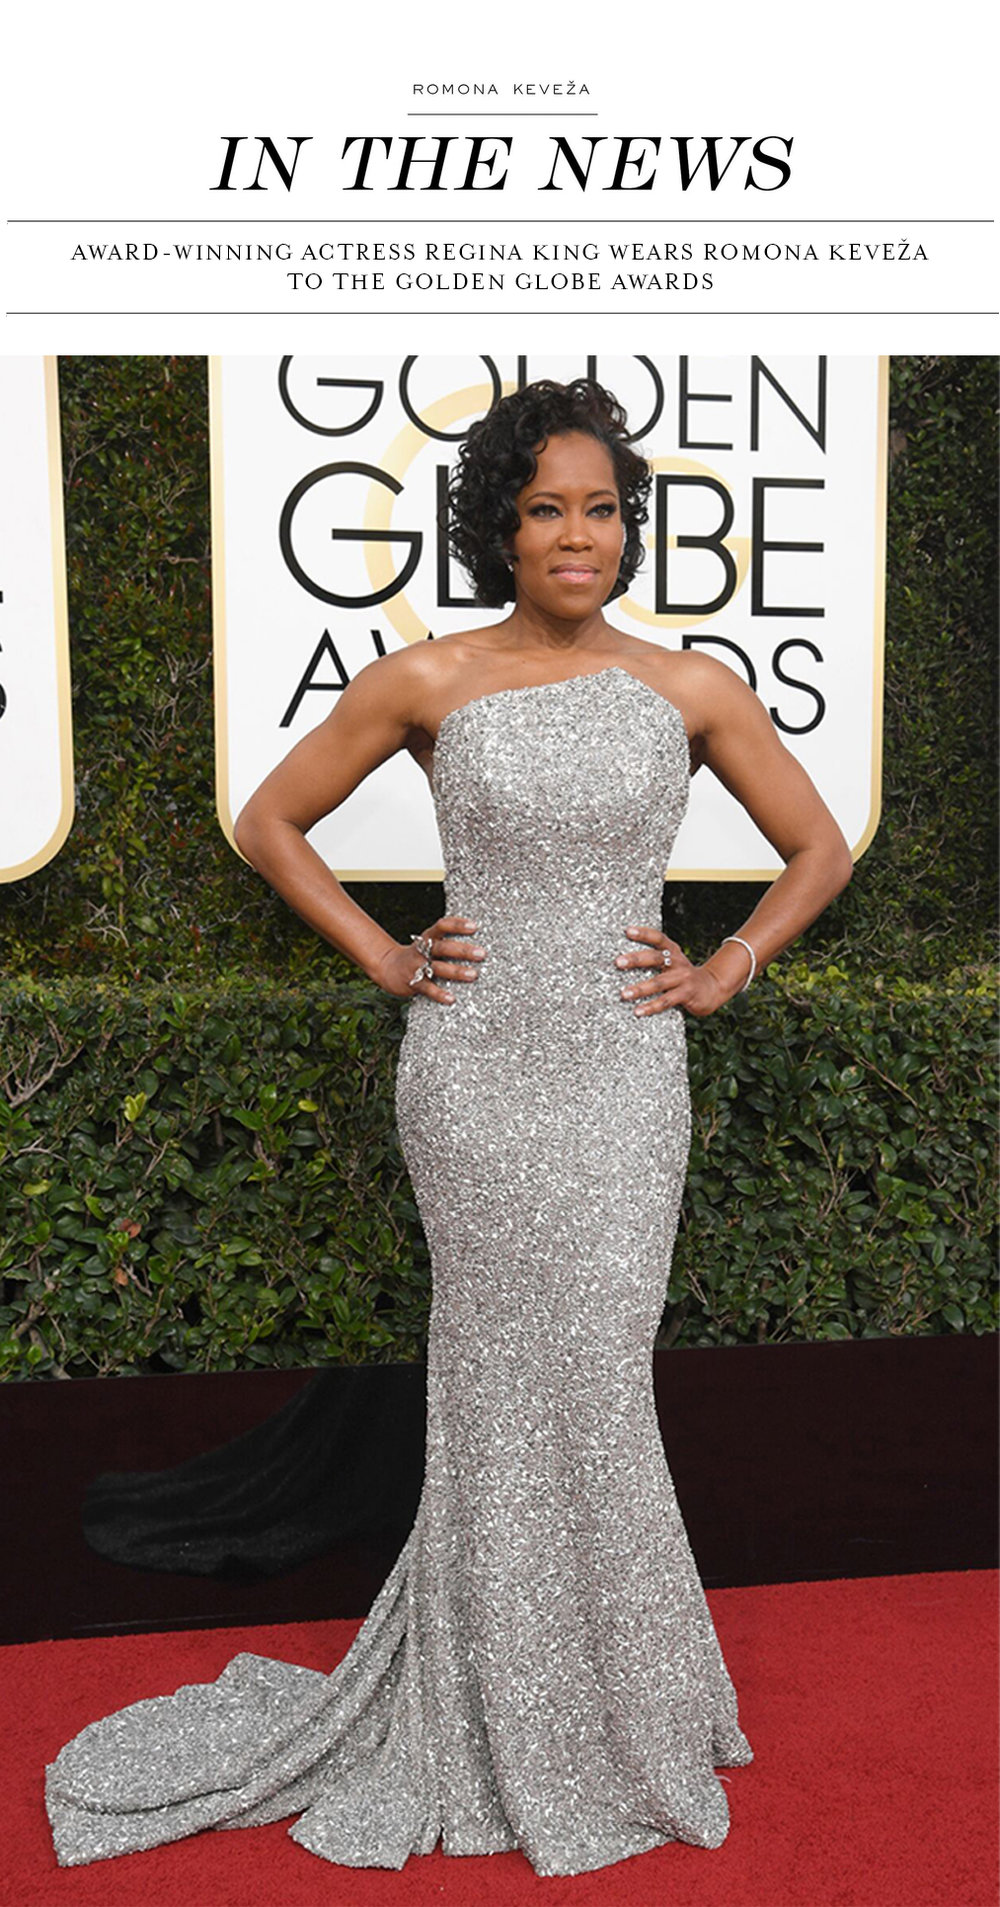 REGINA-KING-WEARS-RKC-AT-THE-GOLDEN-GLOBES.jpg